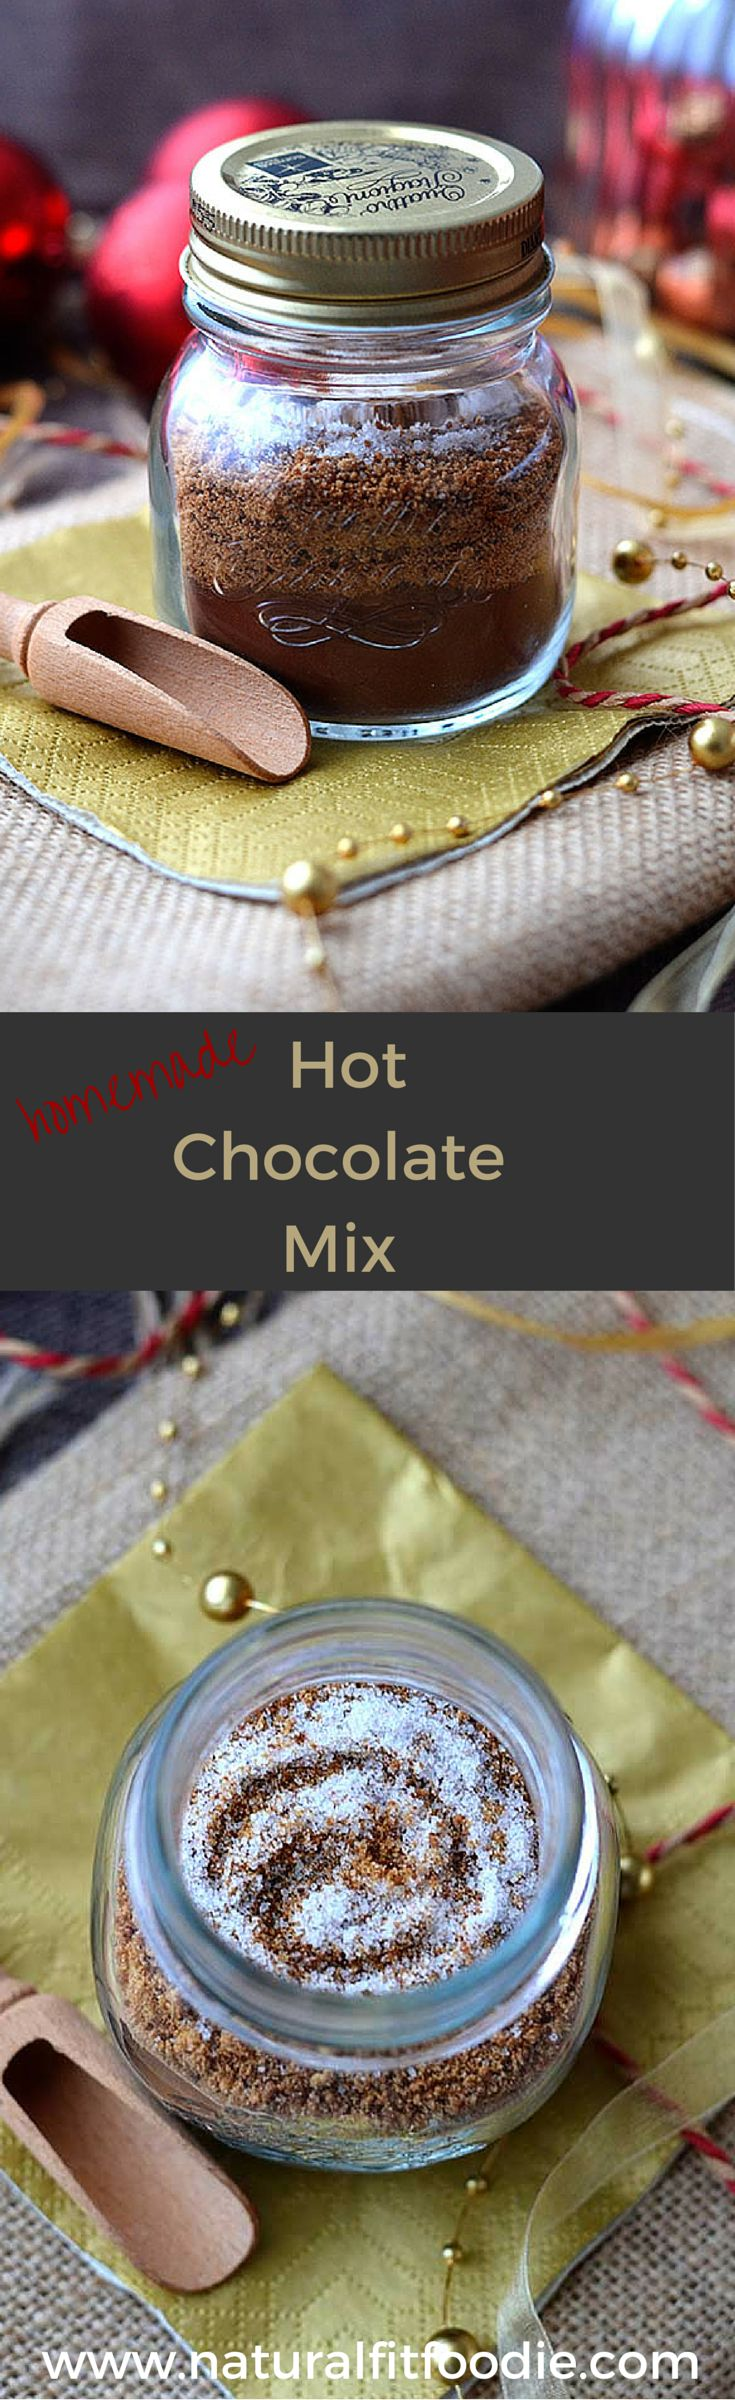 ... Stirs on Pinterest | Hot chocolate mix, Homemade and Hot cocoa mixes